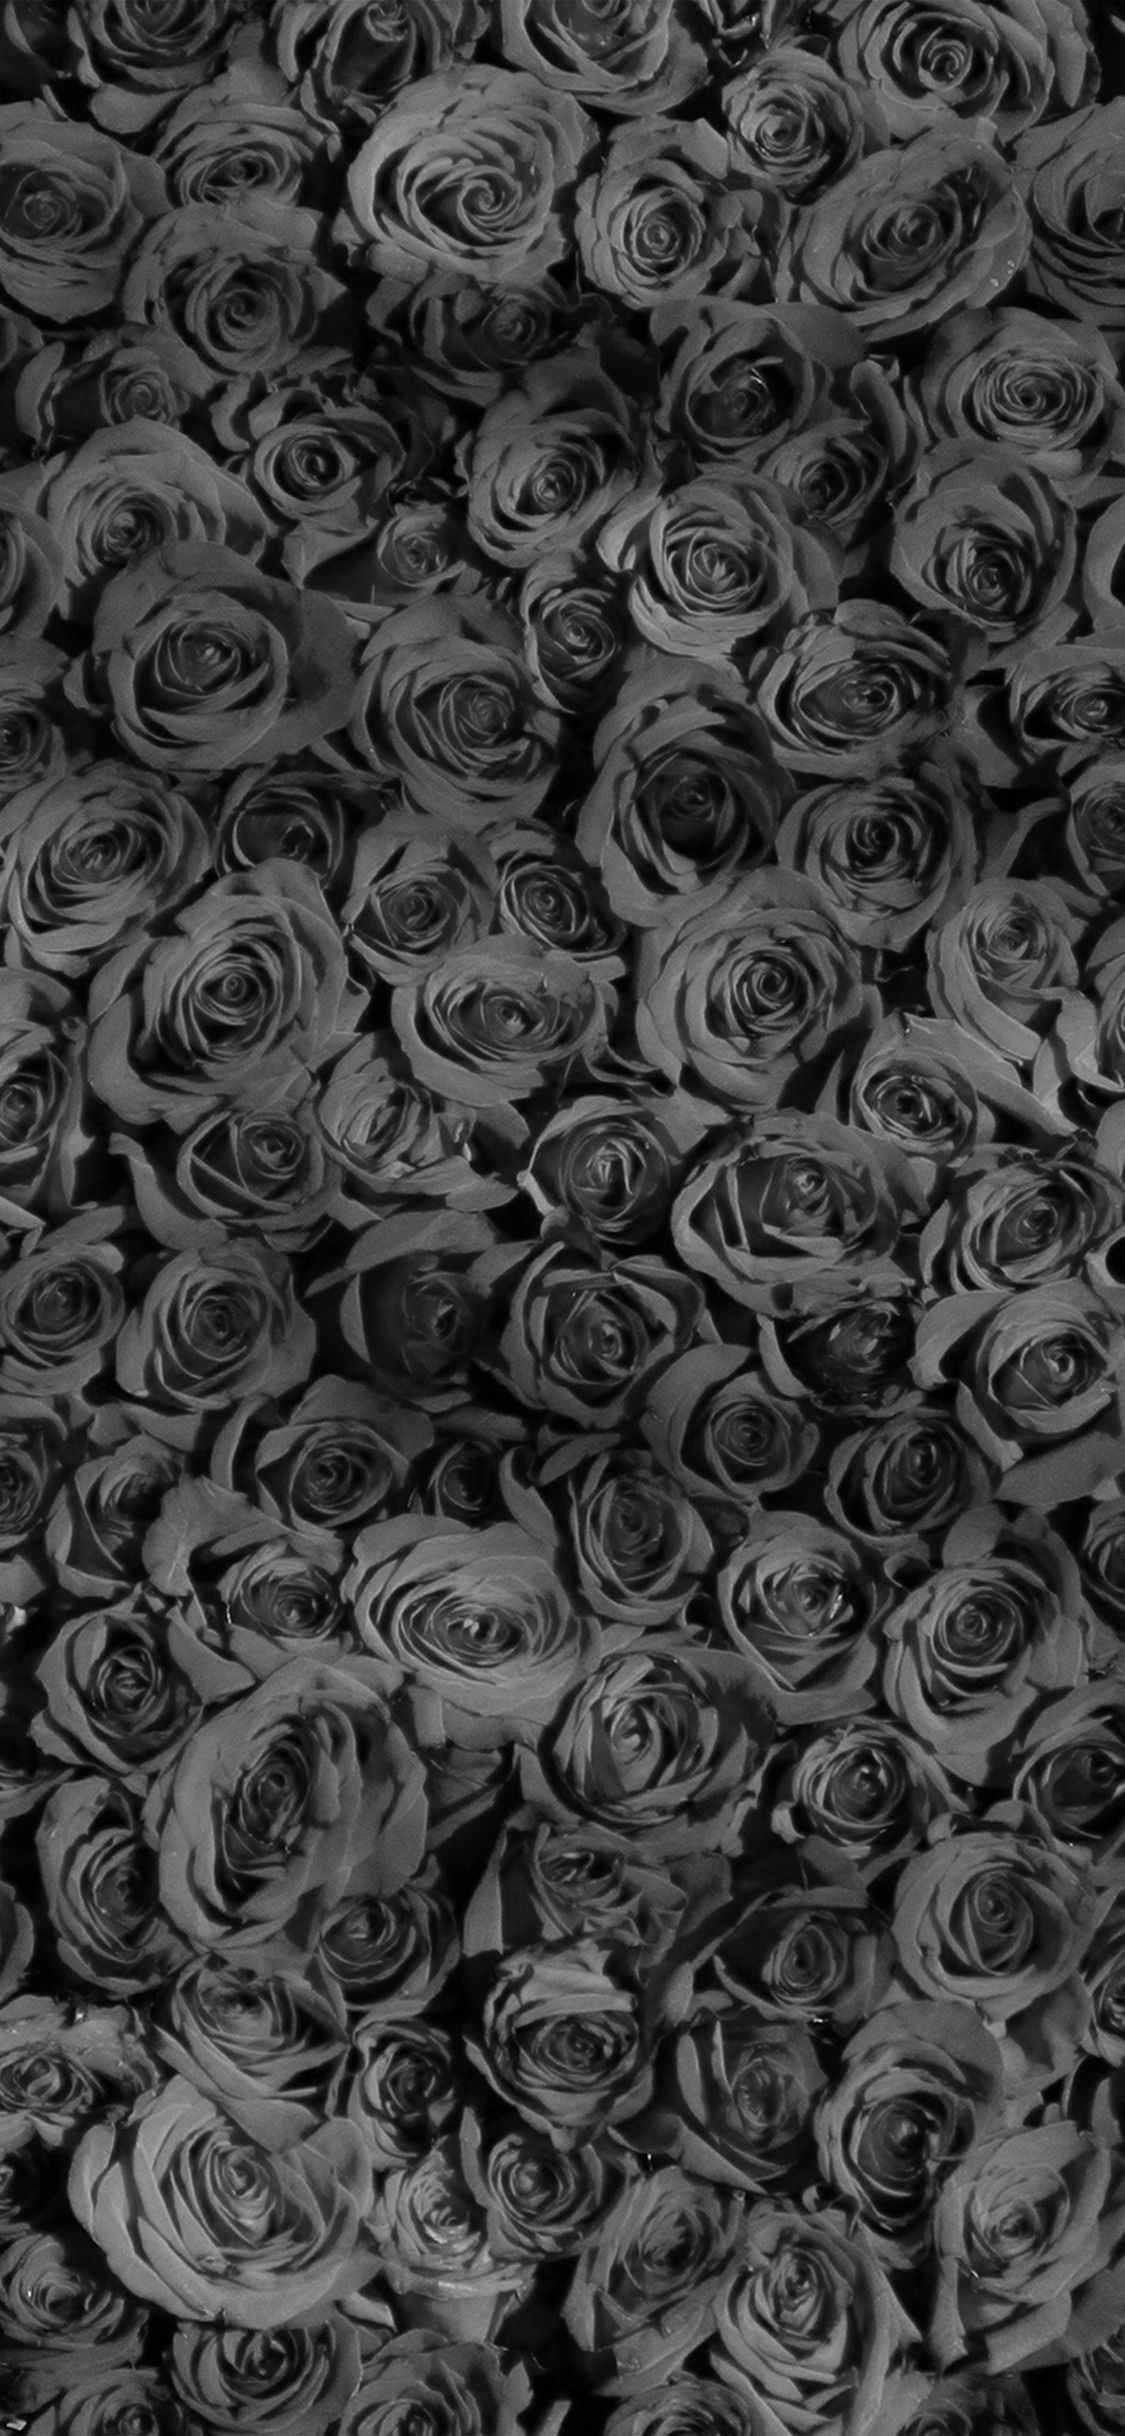 Rose Dark Bw Pattern iPhone X wallpaper (With images